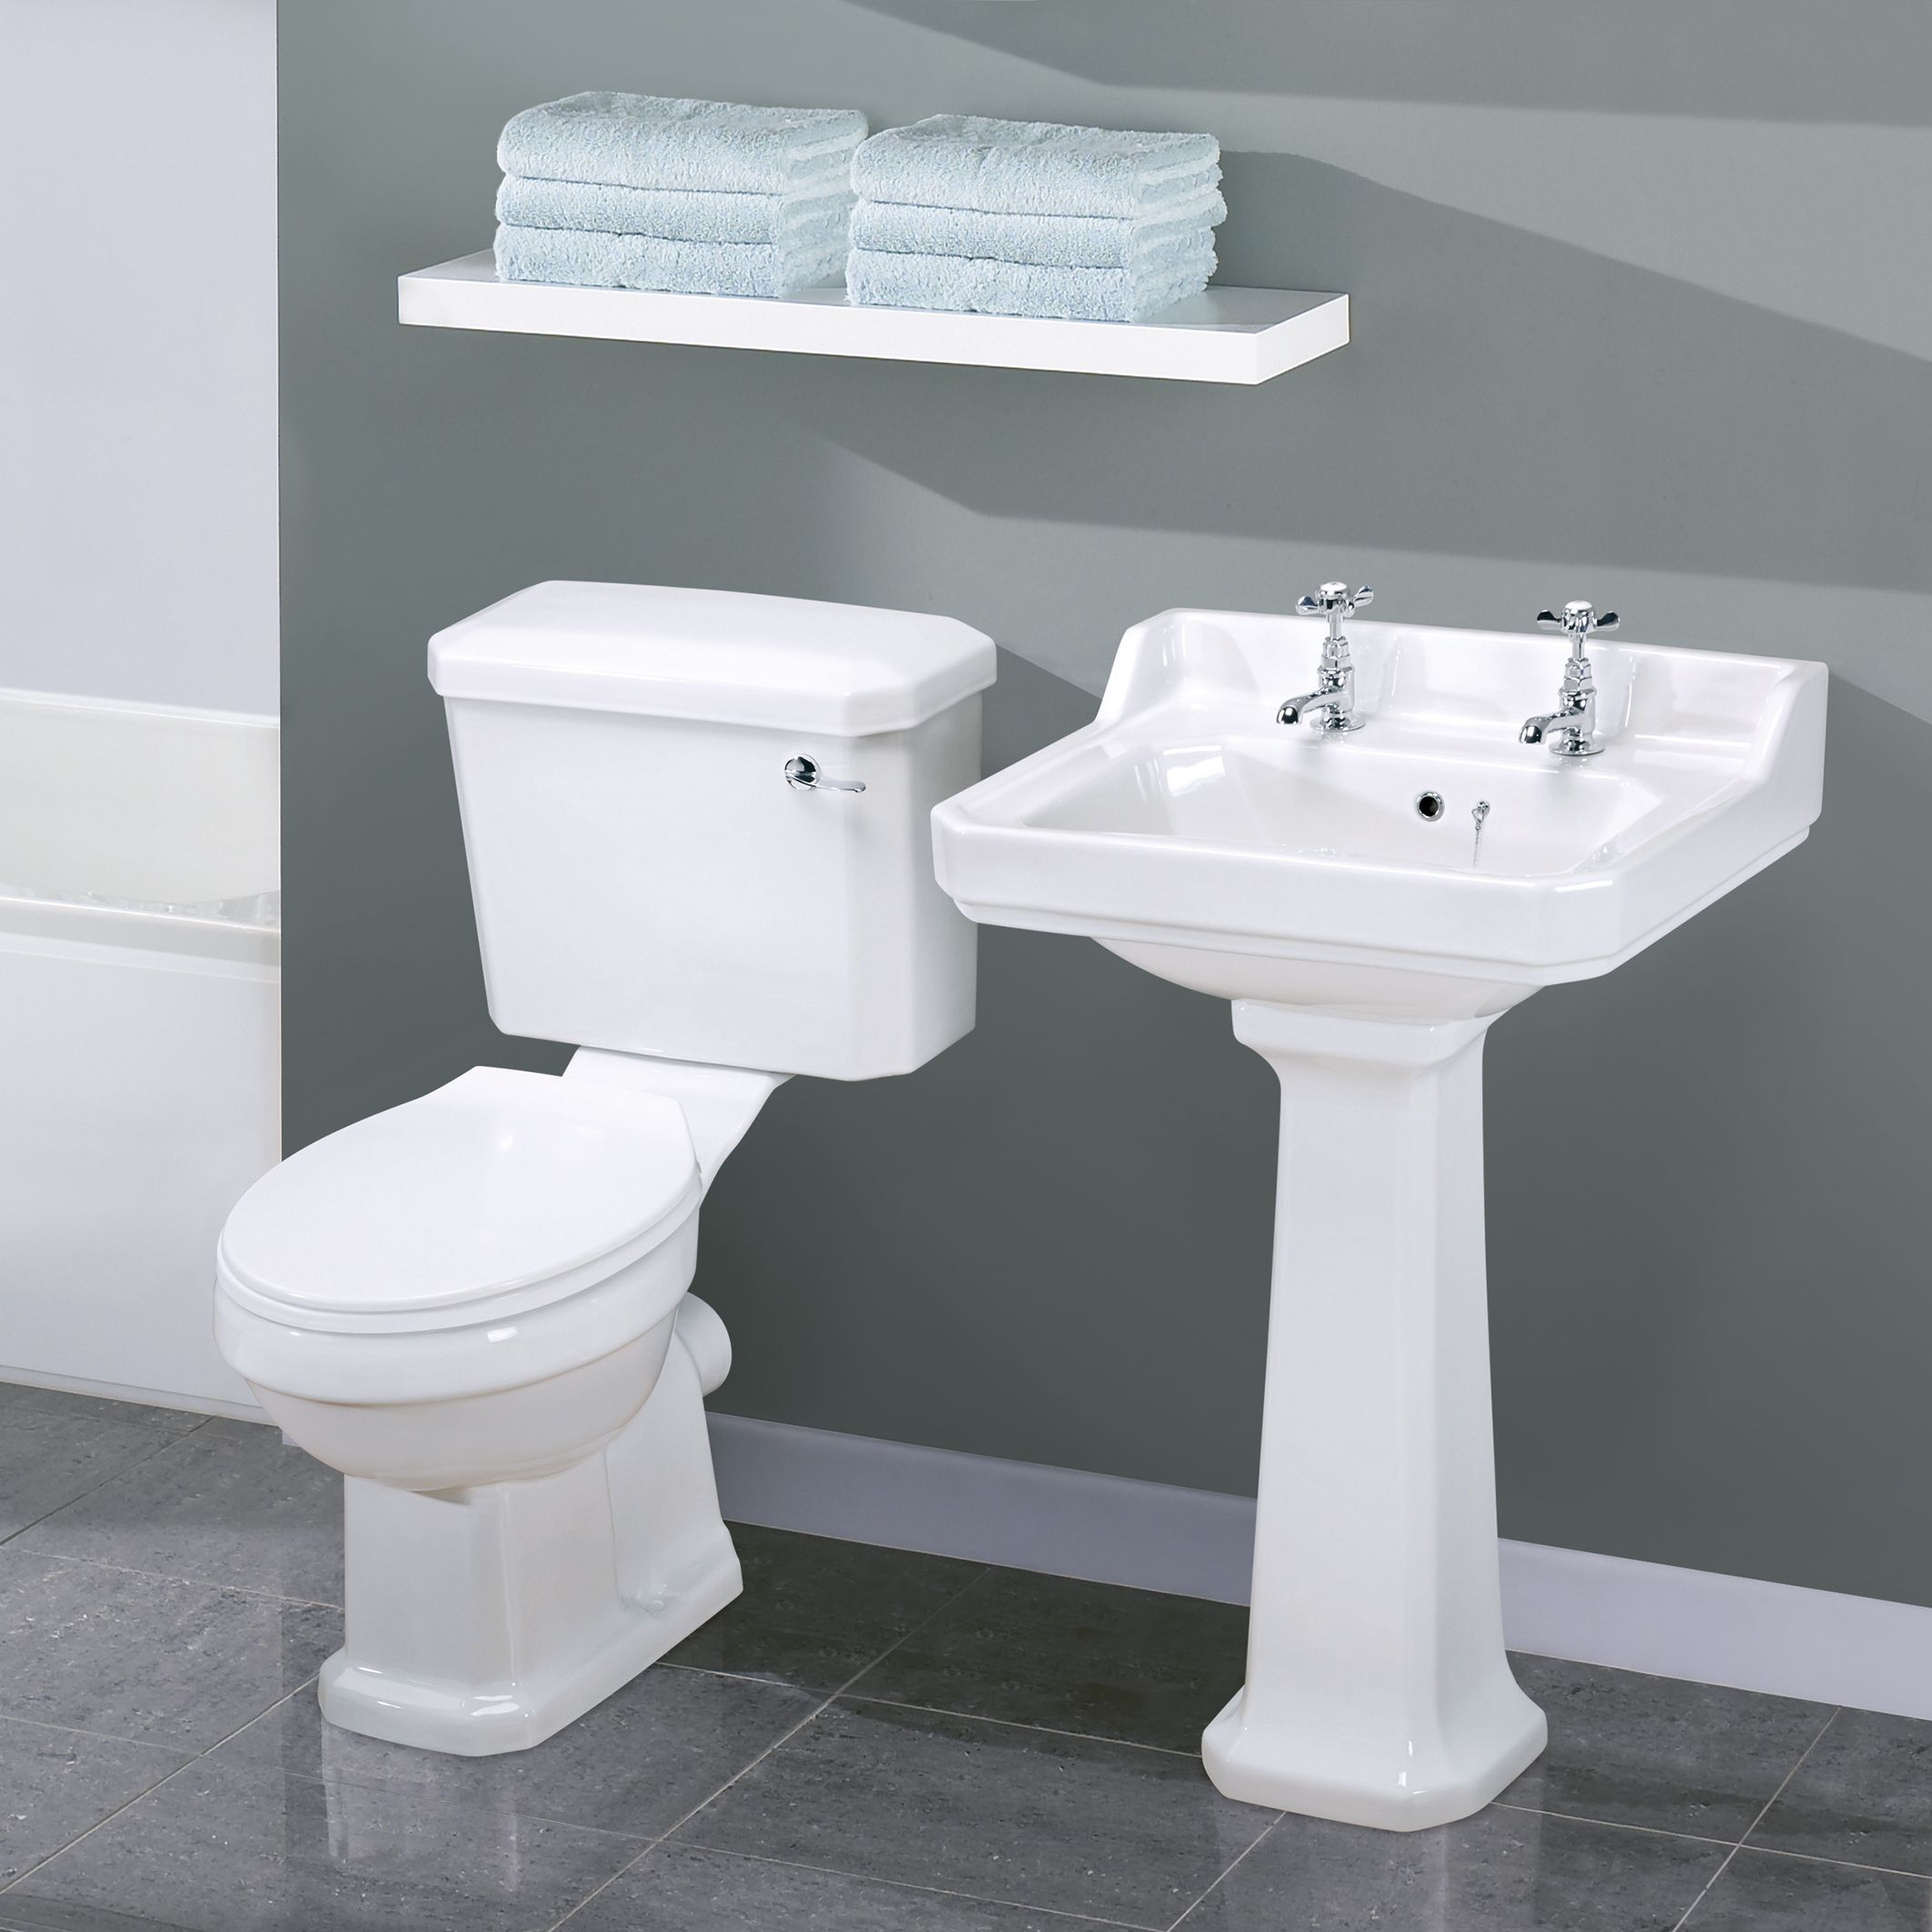 Wonderful Carlton Traditional Toilet And Basin Set One Should Think About Who And How  Easy These